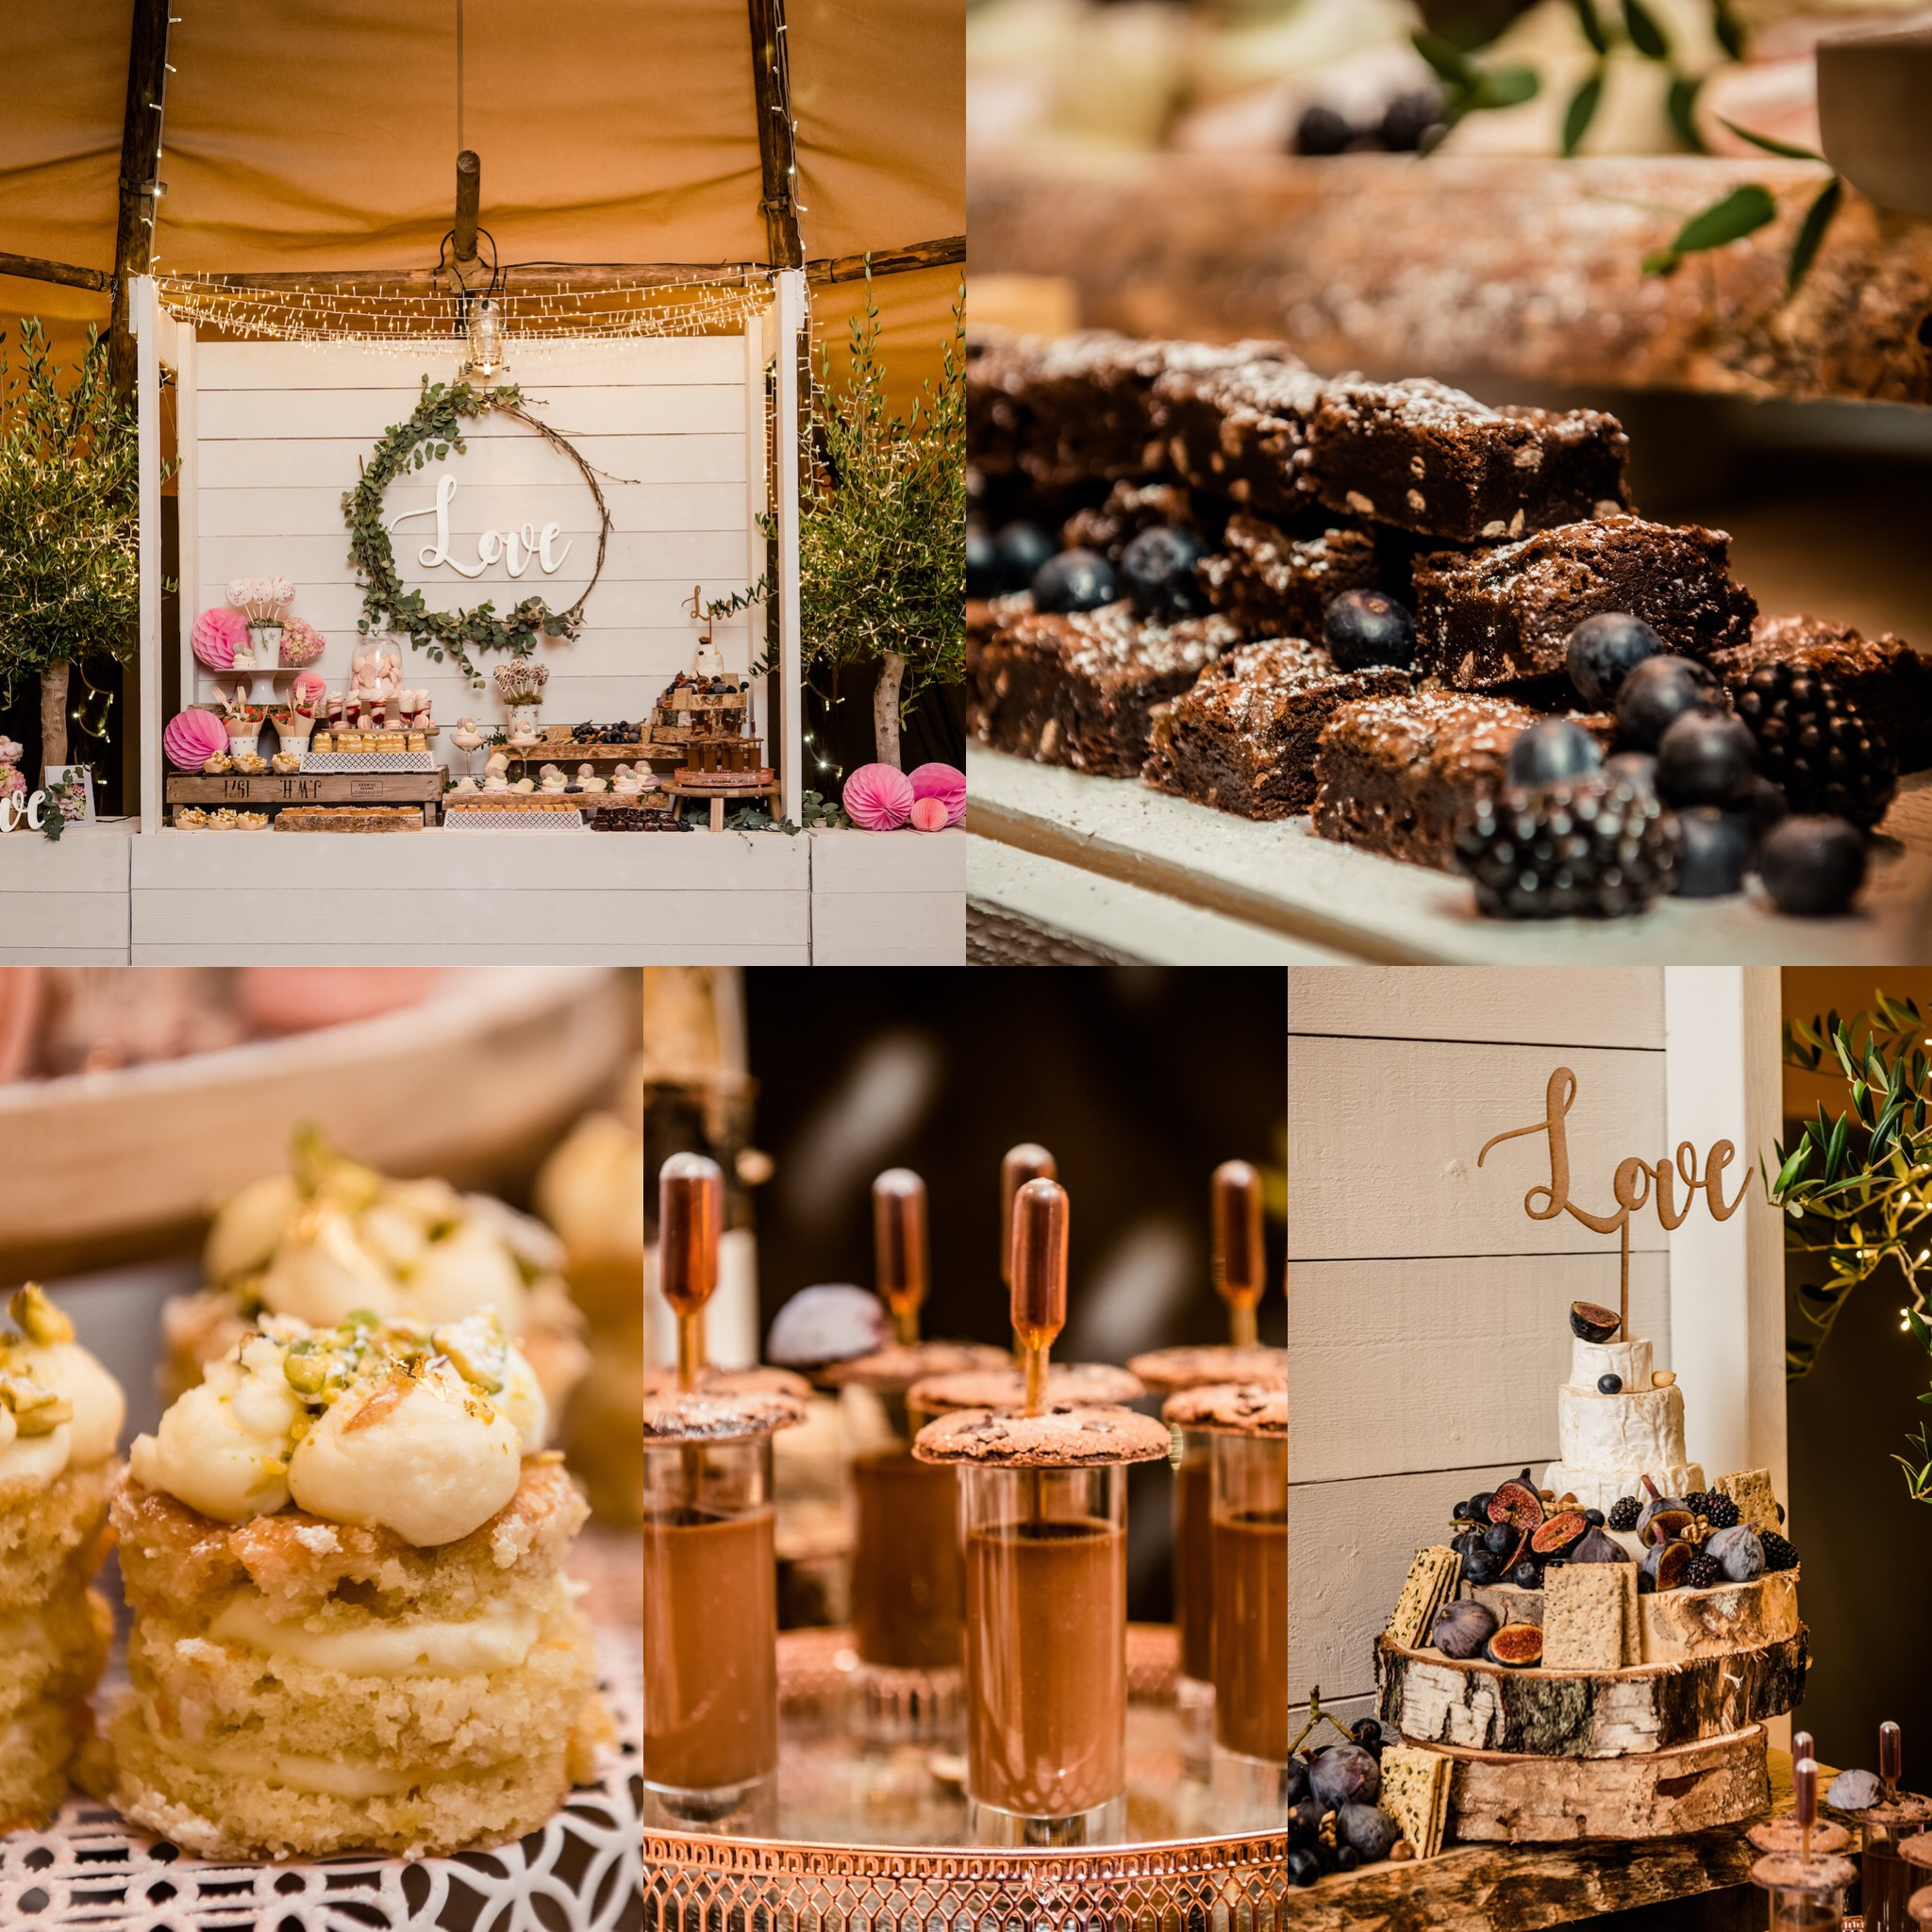 PapaKata Spring Open Weekend 2018 with The Barn Bakery